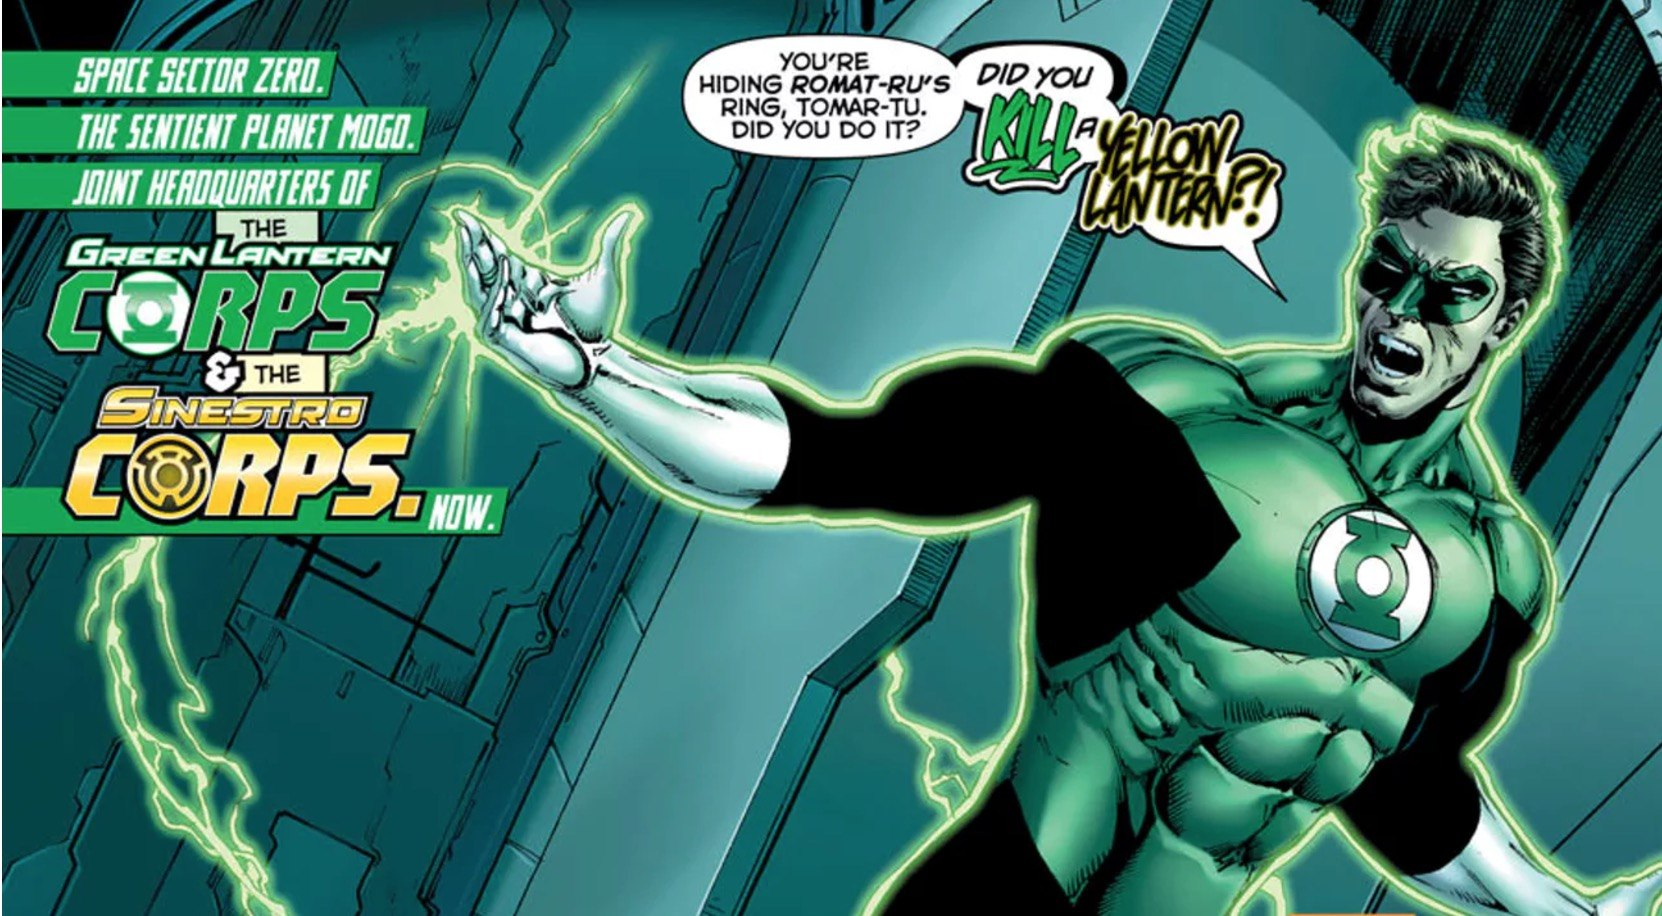 Hal Jordan and the Green Lantern Corps #24 Panel